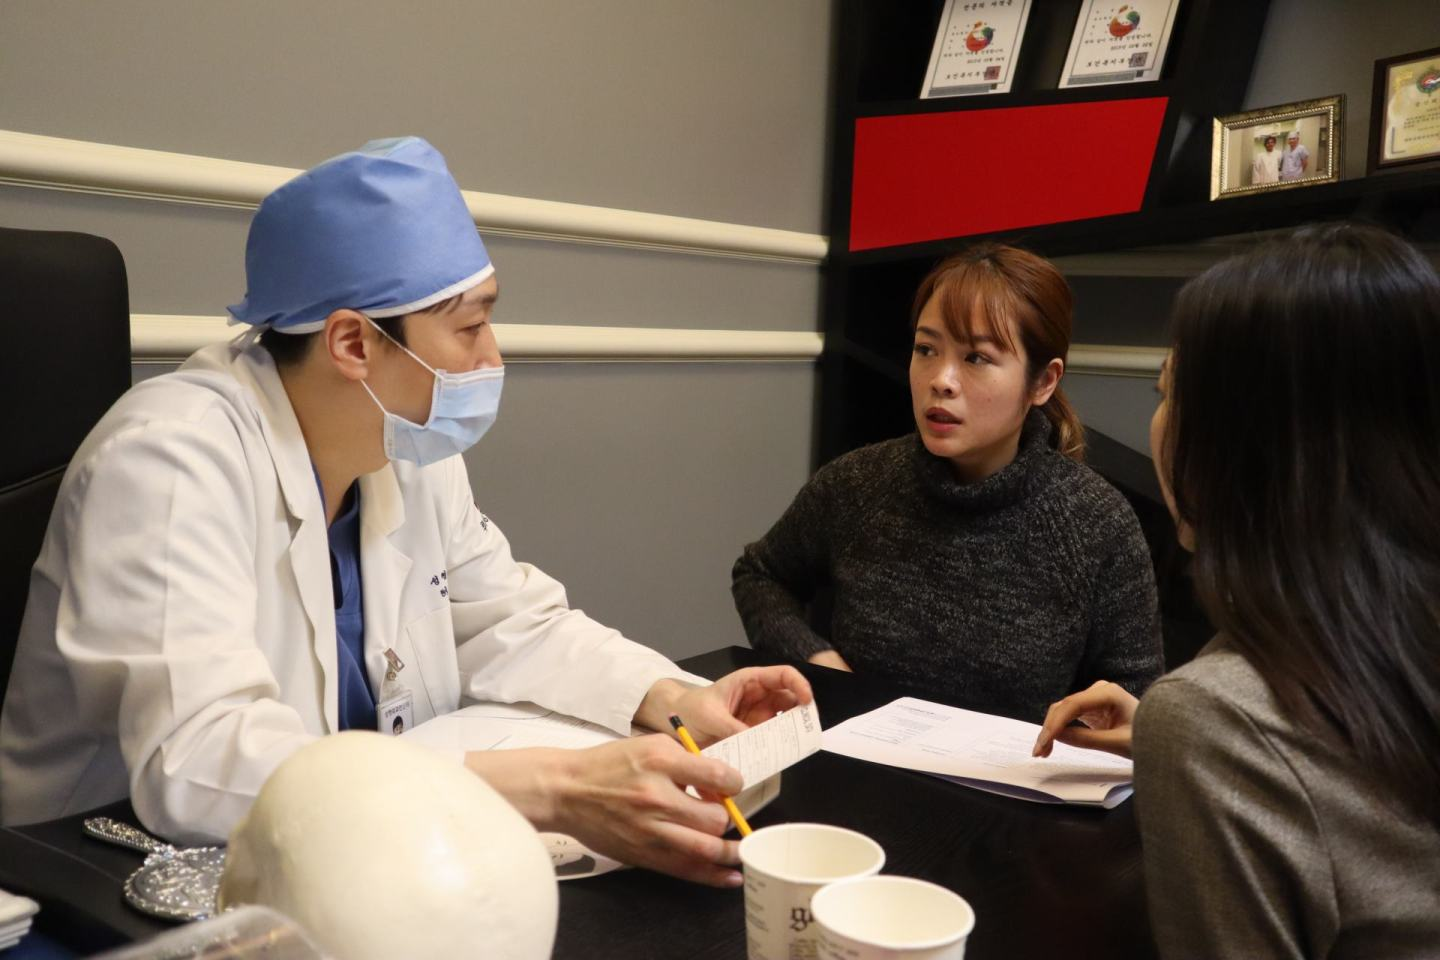 At Ruby Plastic Surgery Clinic in Seoul, South Korea